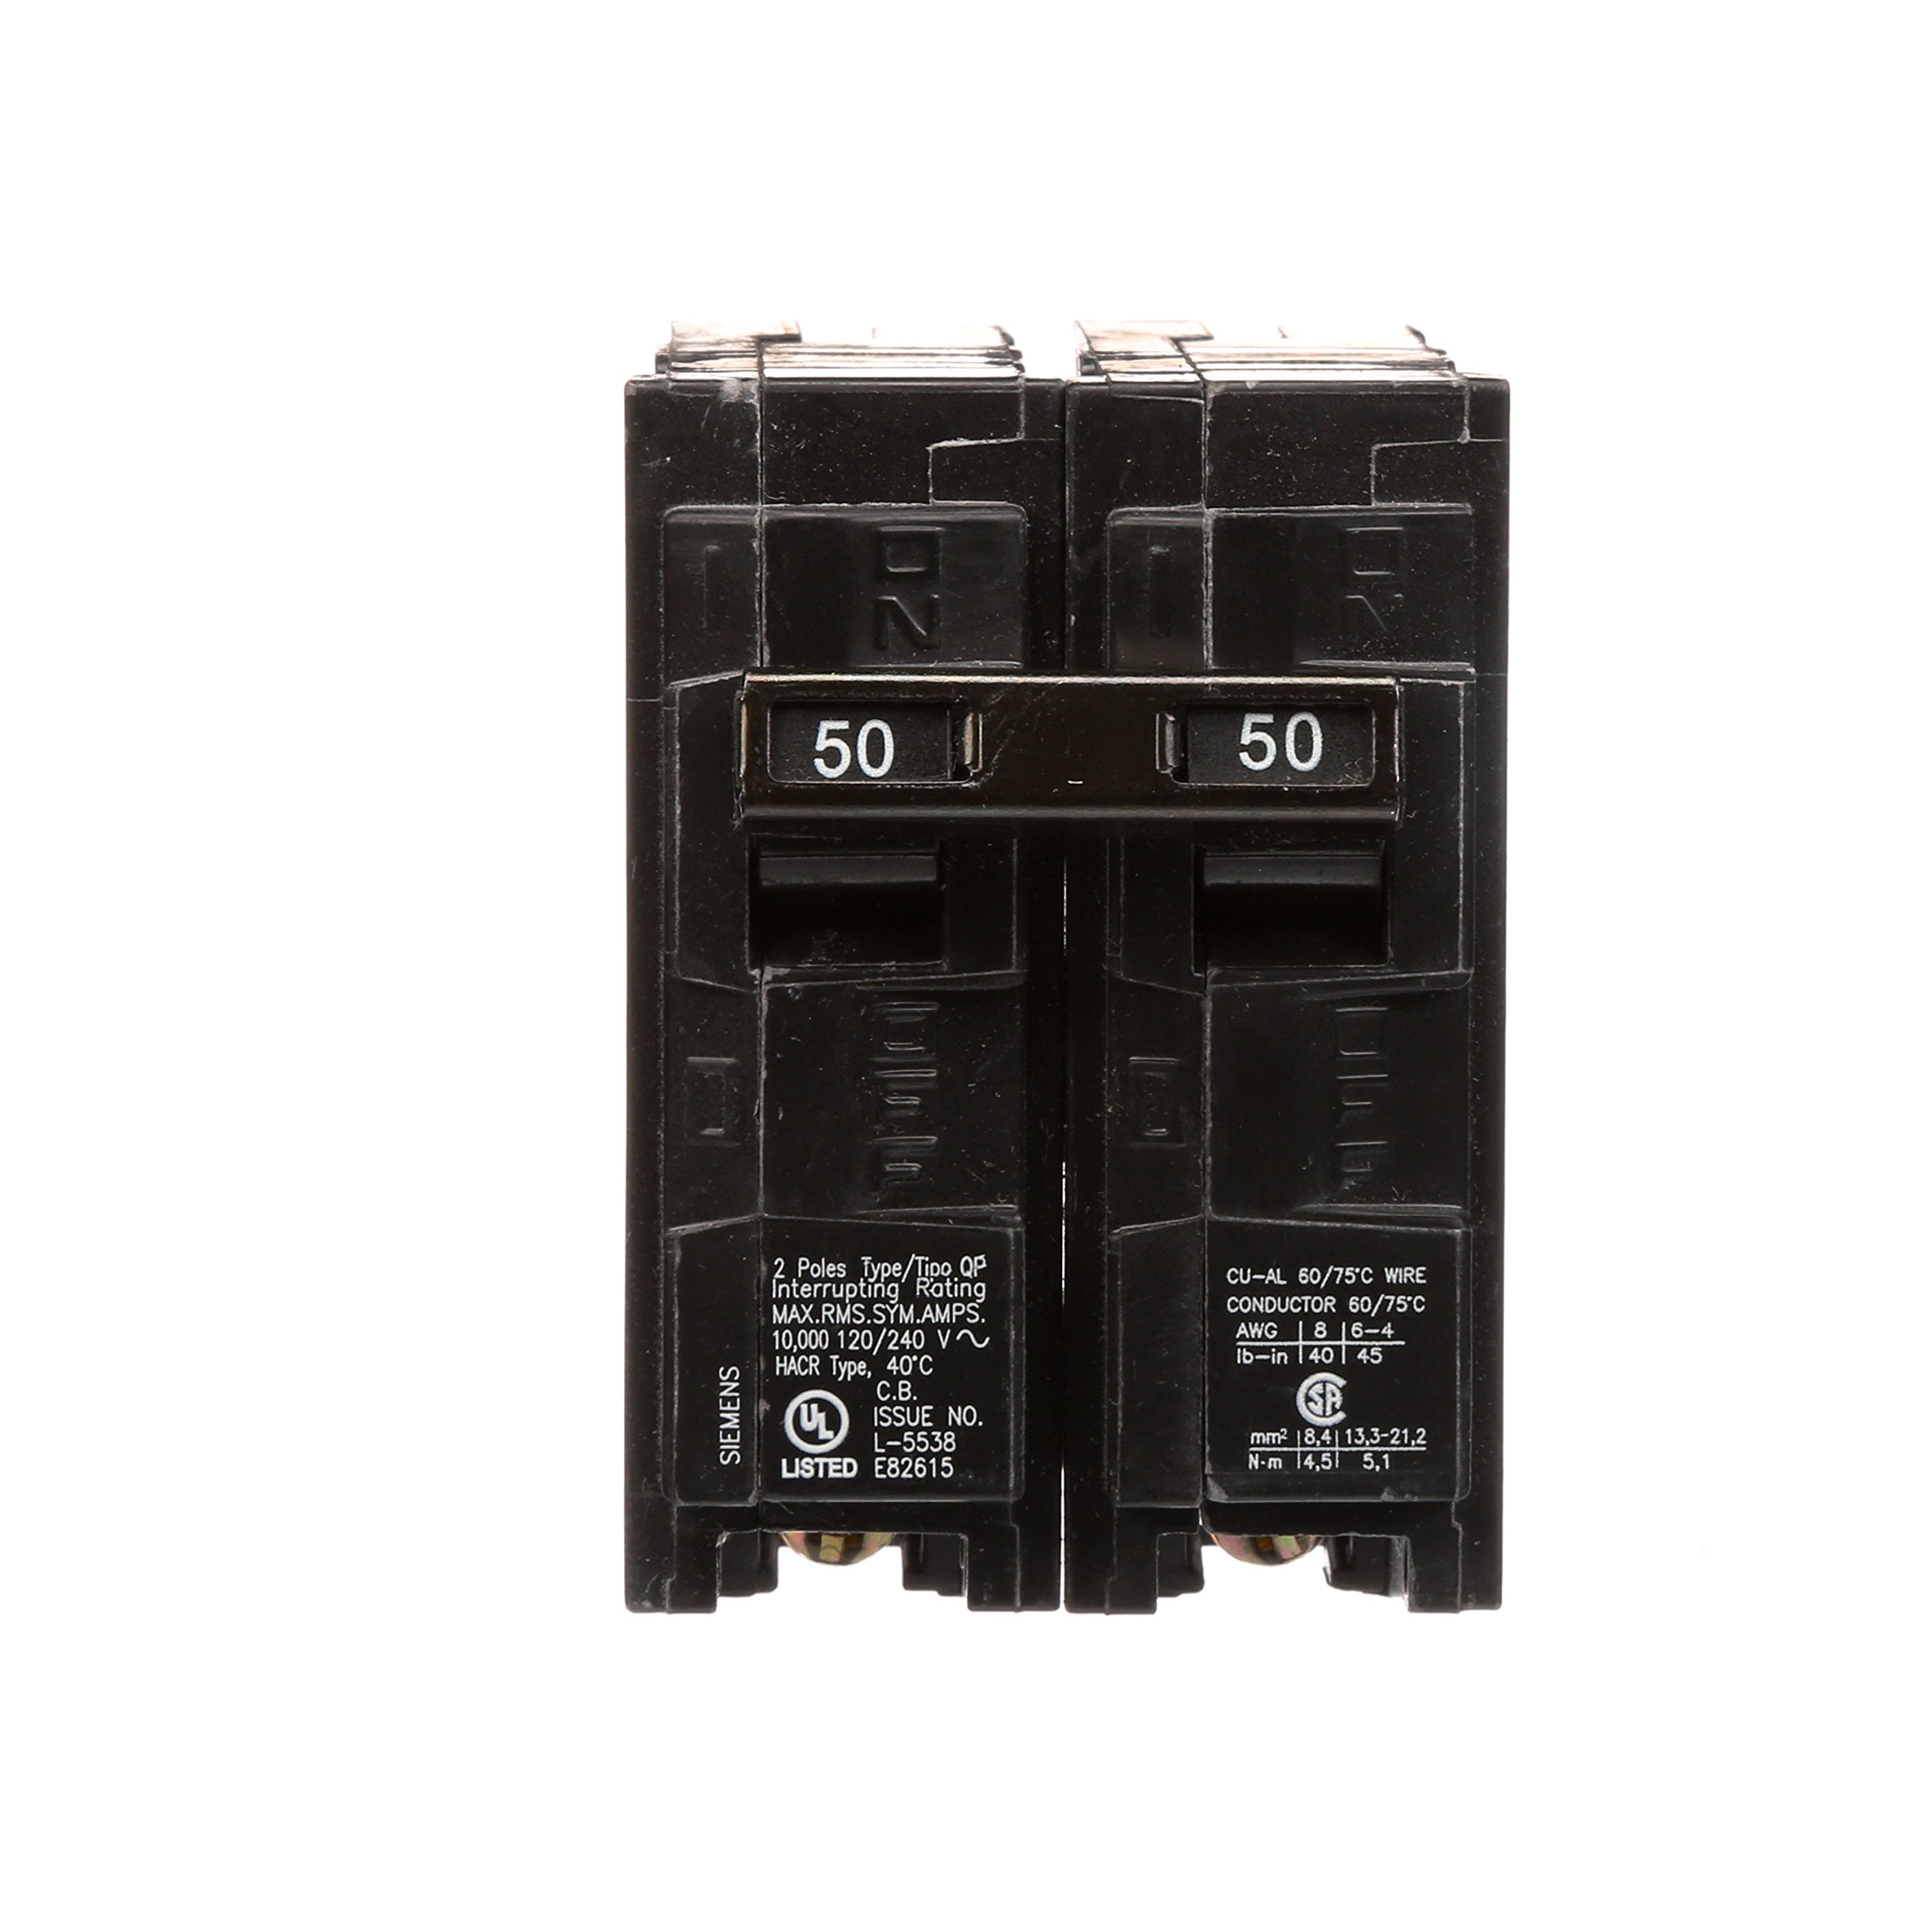 Q250 50-Amp Double Pole Type QP Circuit Breaker by Siemens (Image #2)